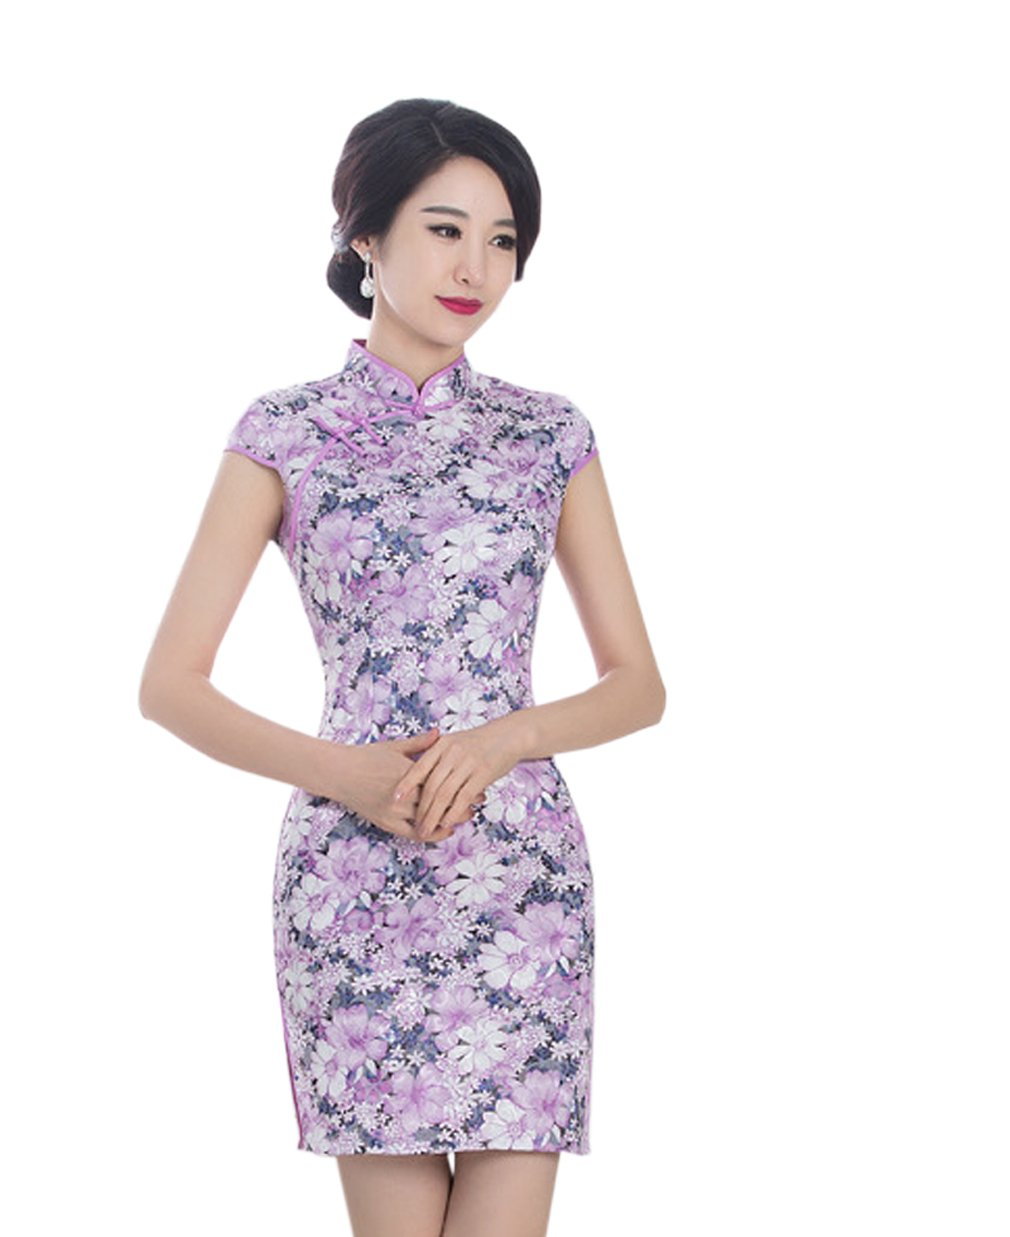 YueLian Womens Cotton Chinese Party Short Cheongsam Qipao Dresses Summer (China S= US 2, light purple)